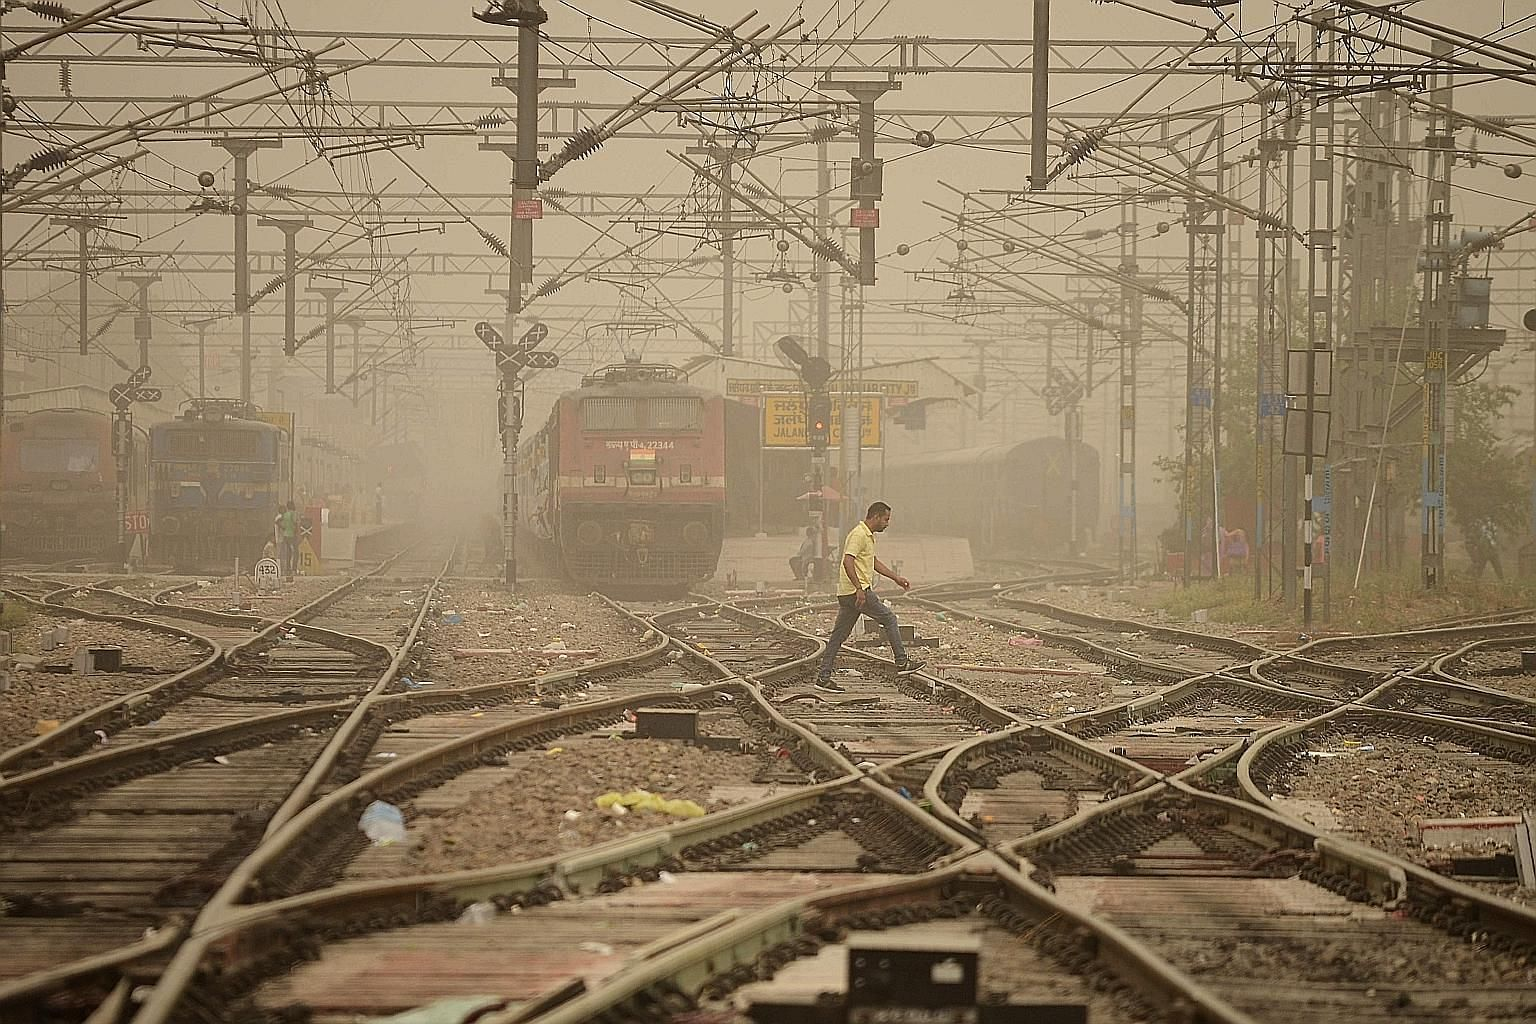 A railway crossing in Jalandhar, India, shrouded in dust yesterday. Meteorologists said dust storms in nearby desert areas had brought dust particles into Delhi. Combined with the existing pollutants in the air, this has resulted in smog-like conditi